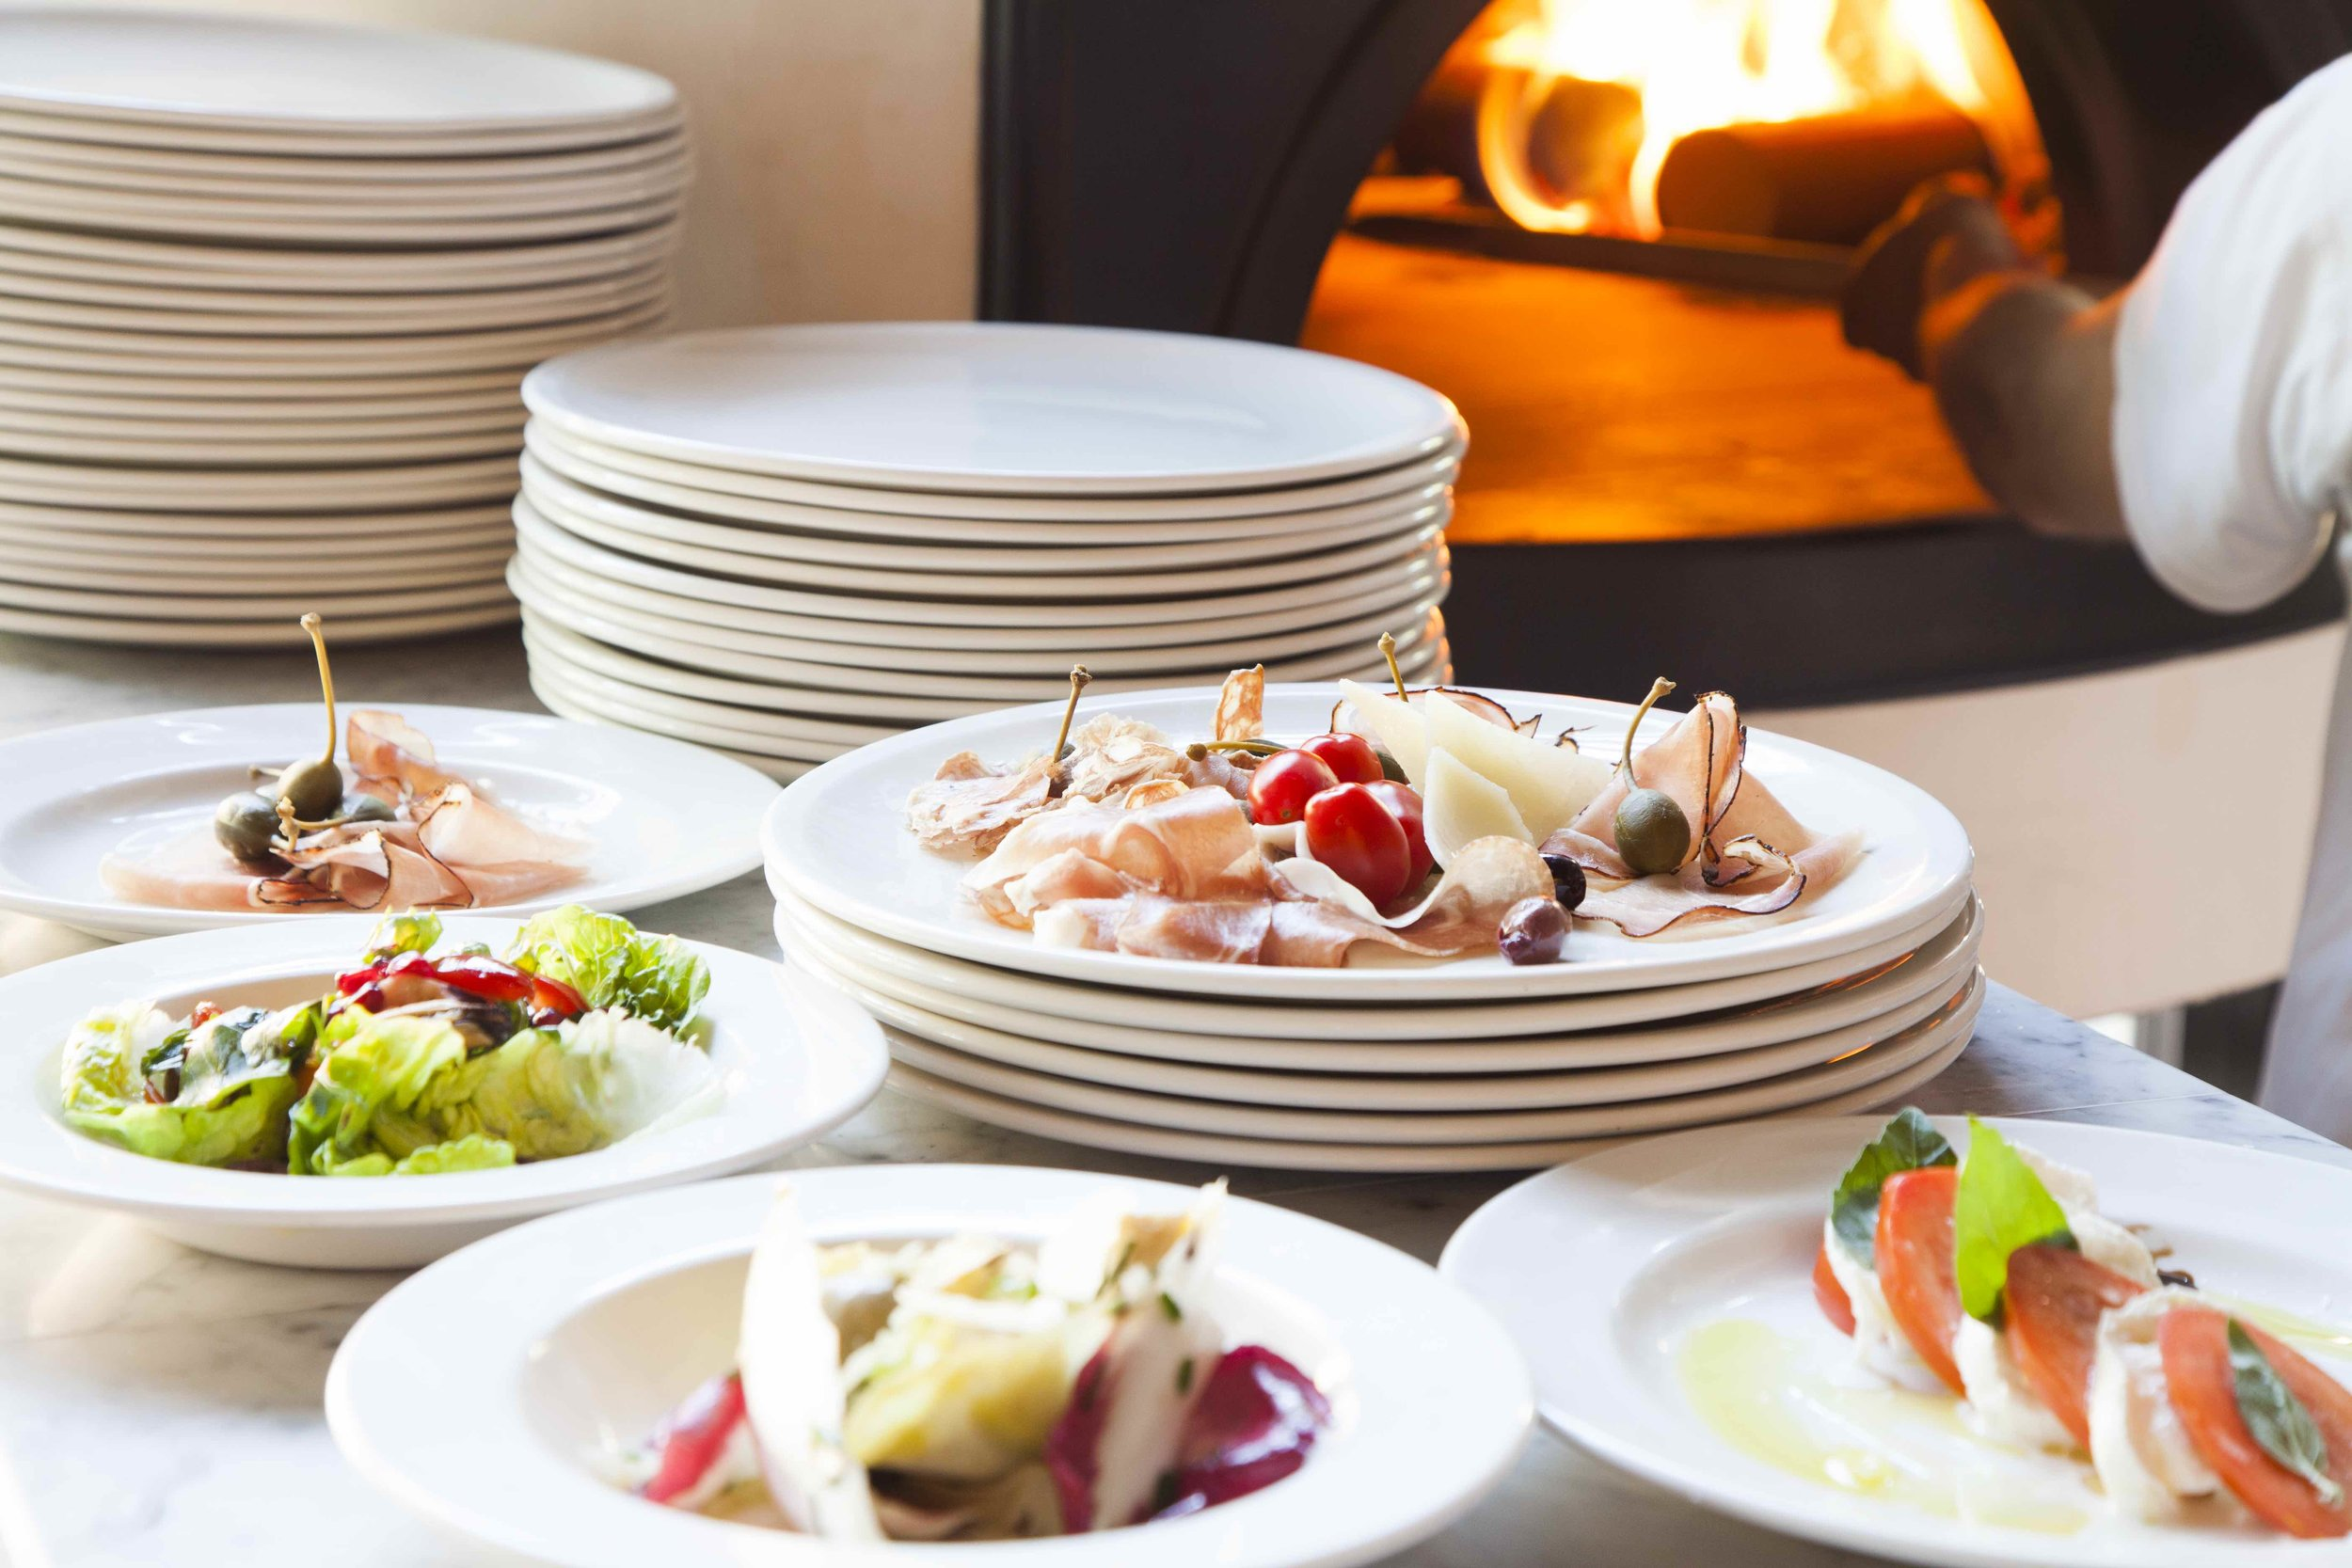 Our wood-fired oven and delicious anti-pasti